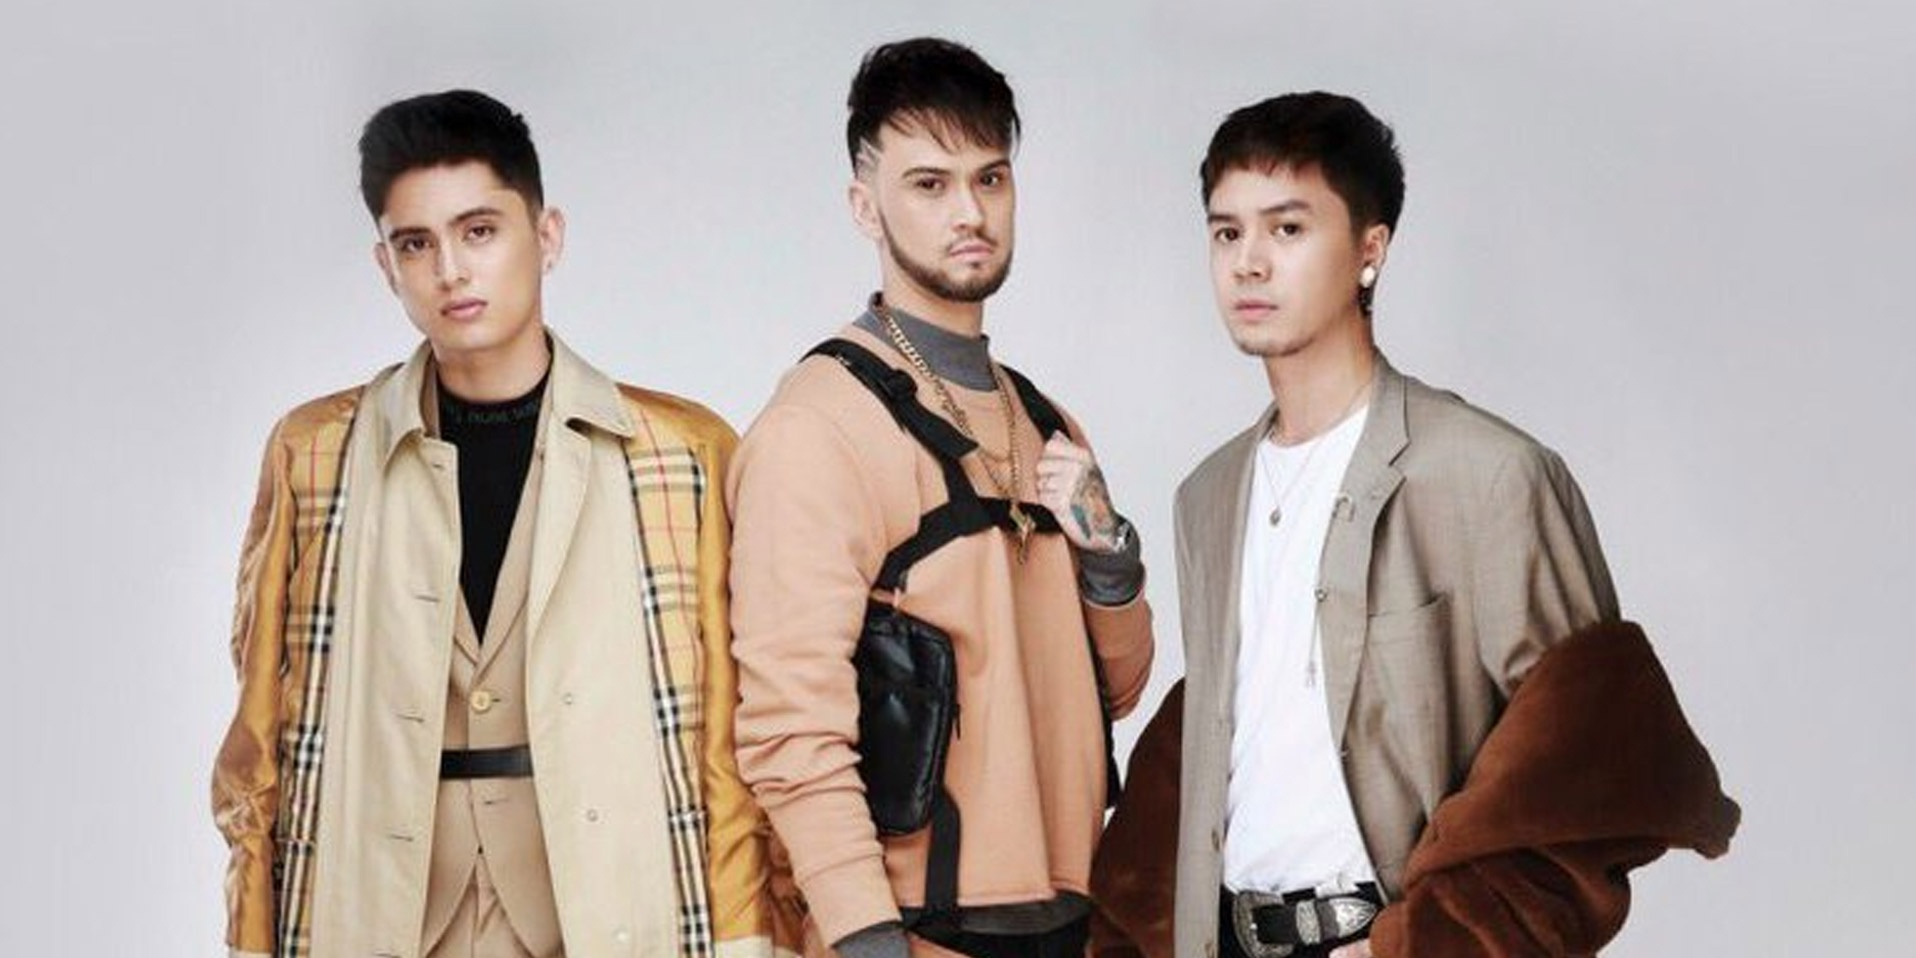 James Reid, Sam Concepcion, and Billy Crawford to perform in concert this April